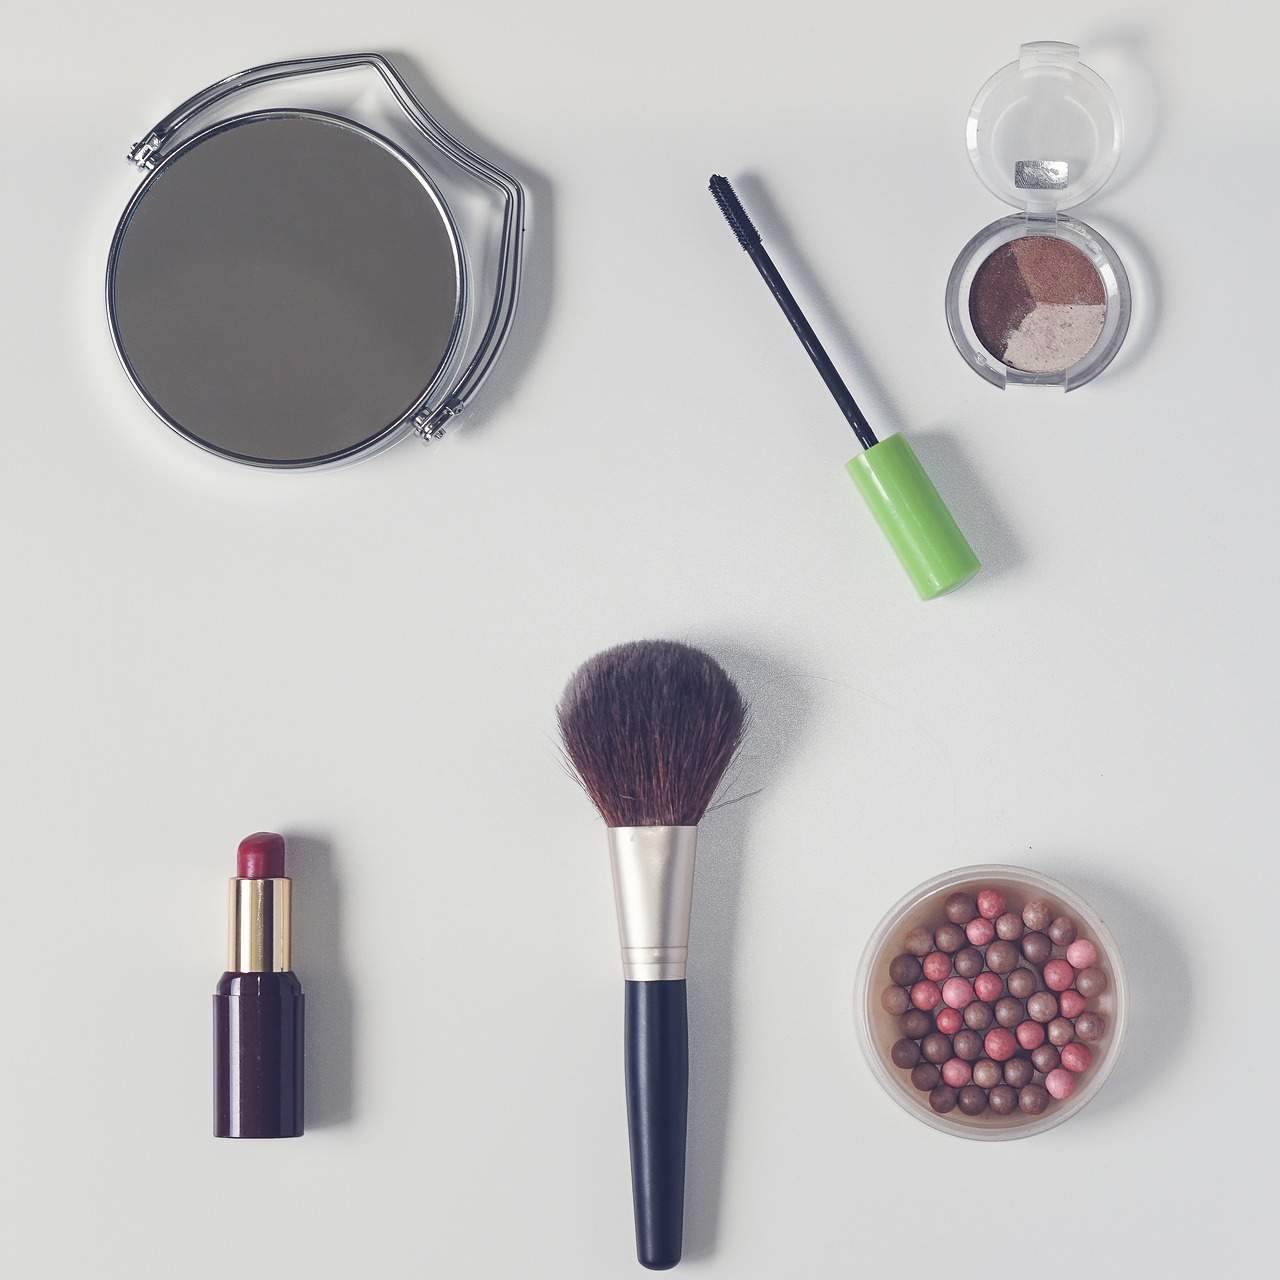 6 Promising Trends In The Cosmetic World To Look Out For